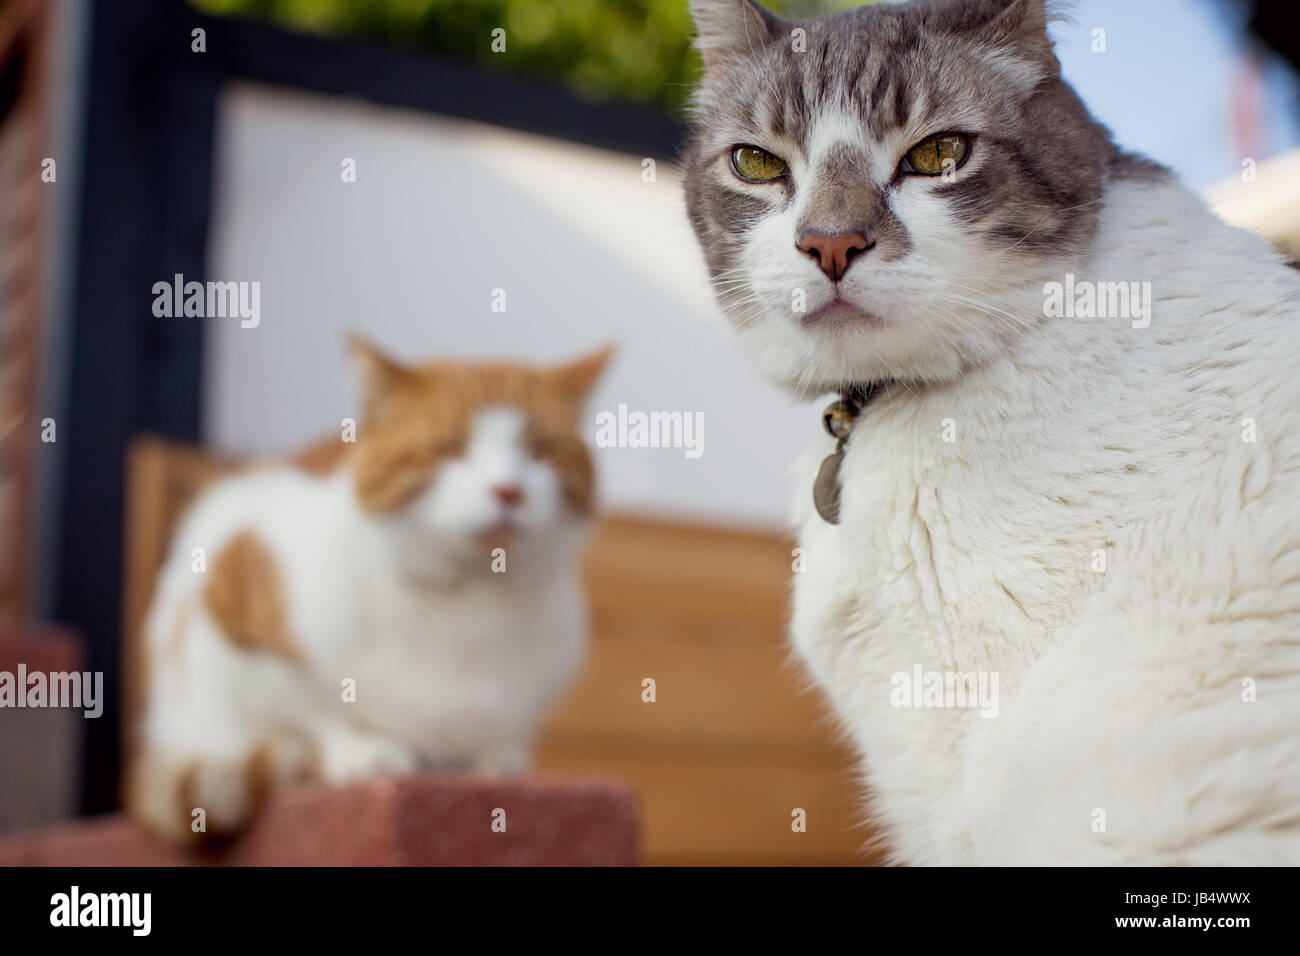 A close-up of two cats in a residential setting, one leering into ...